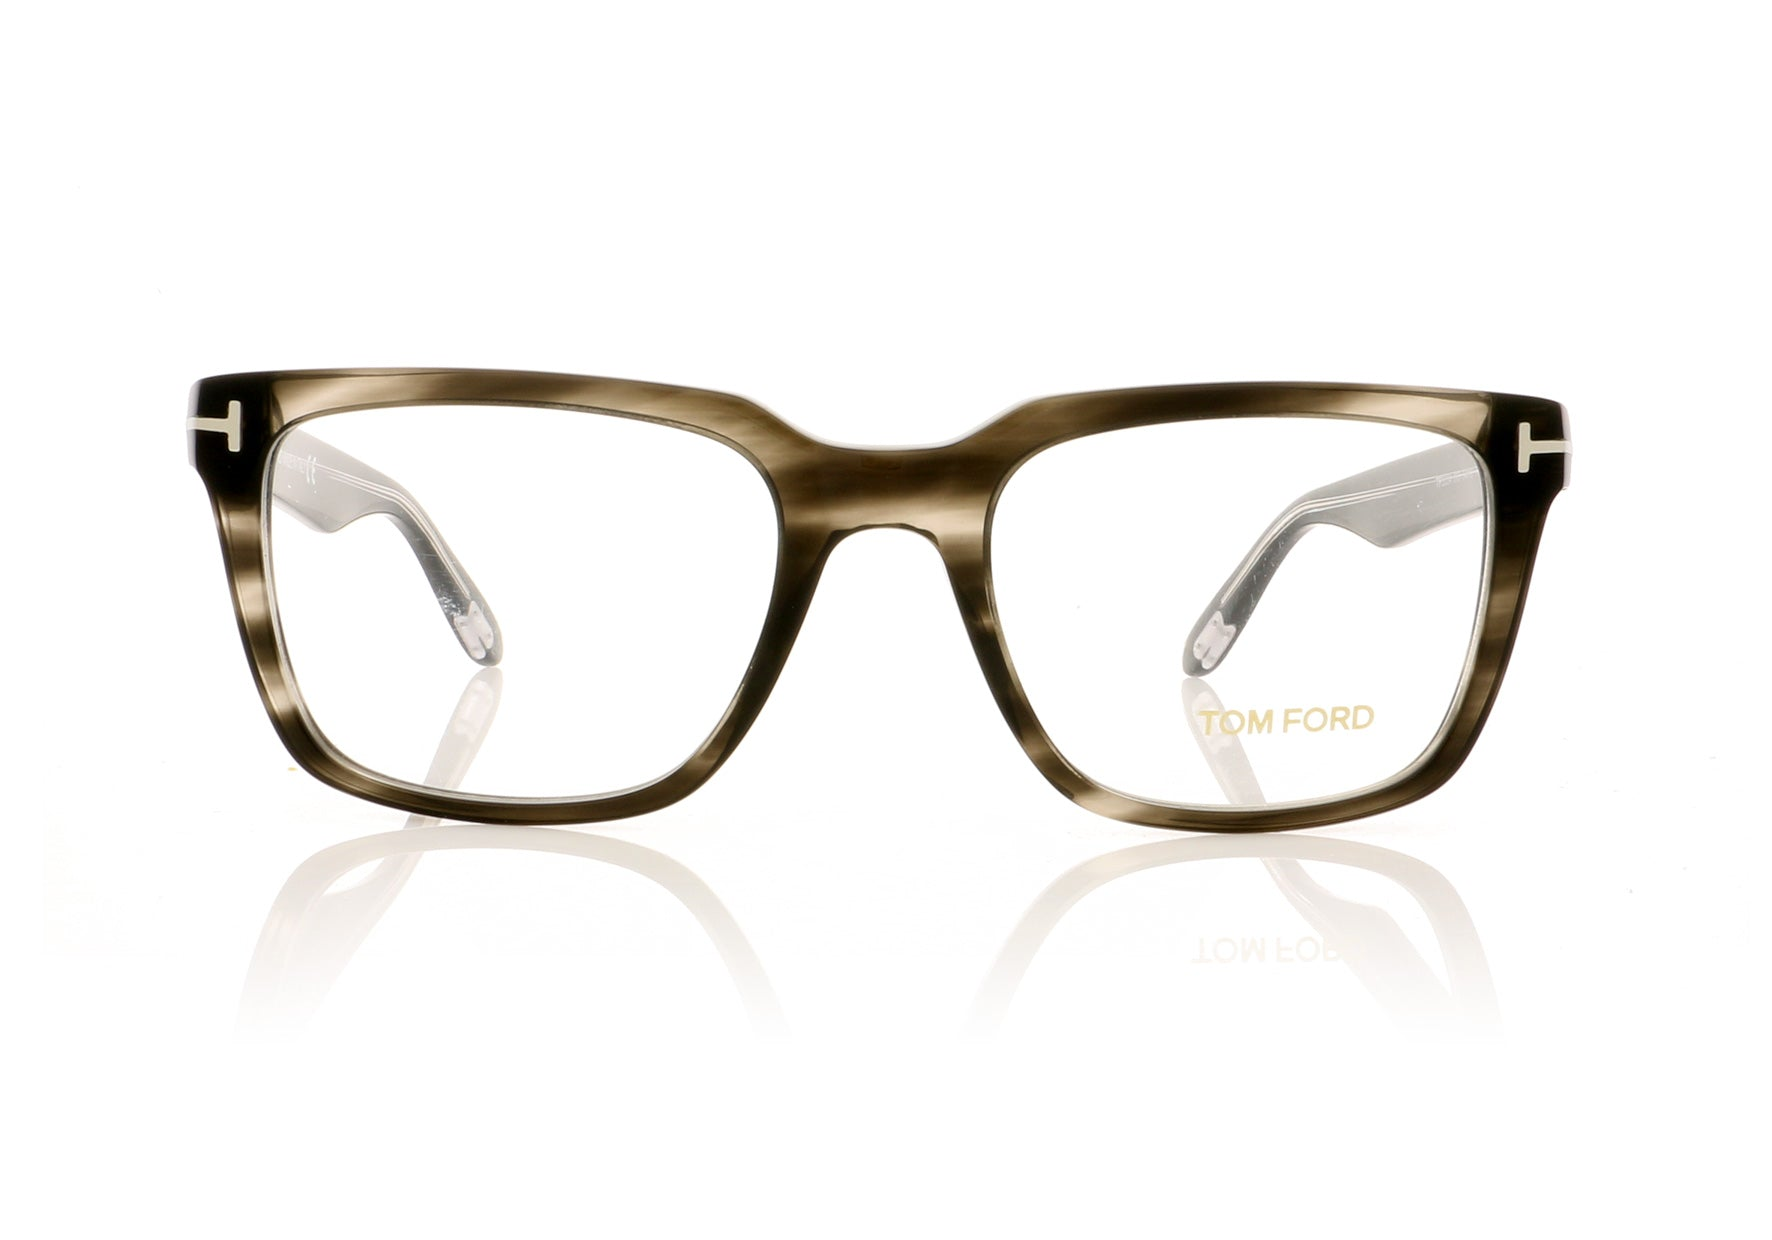 c51832faf0ee4 Tom Ford TF5304 093 Light Grey Glasses at OCO